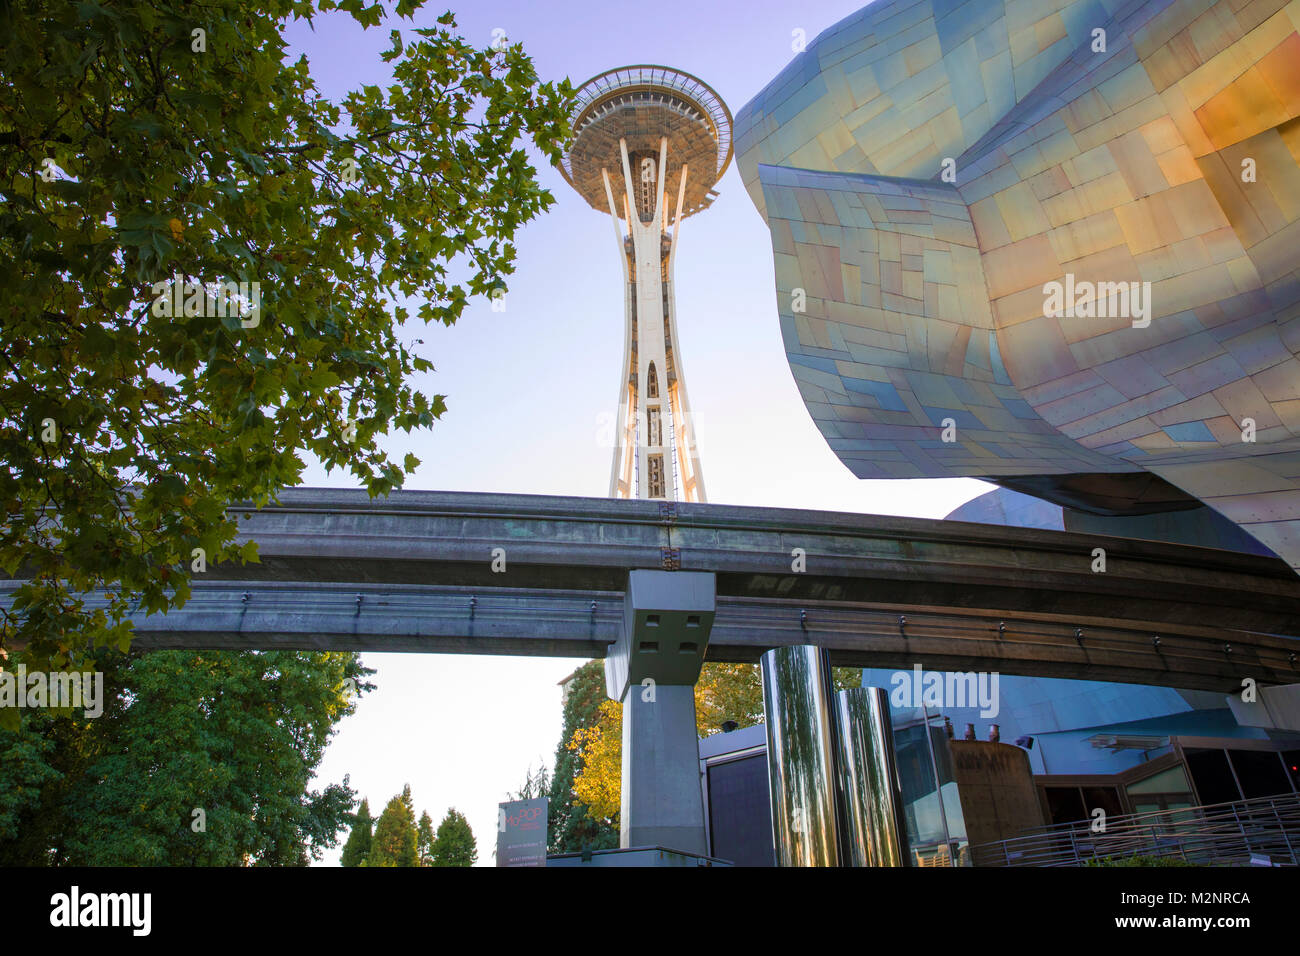 Seattle, Washington State - Stock Image